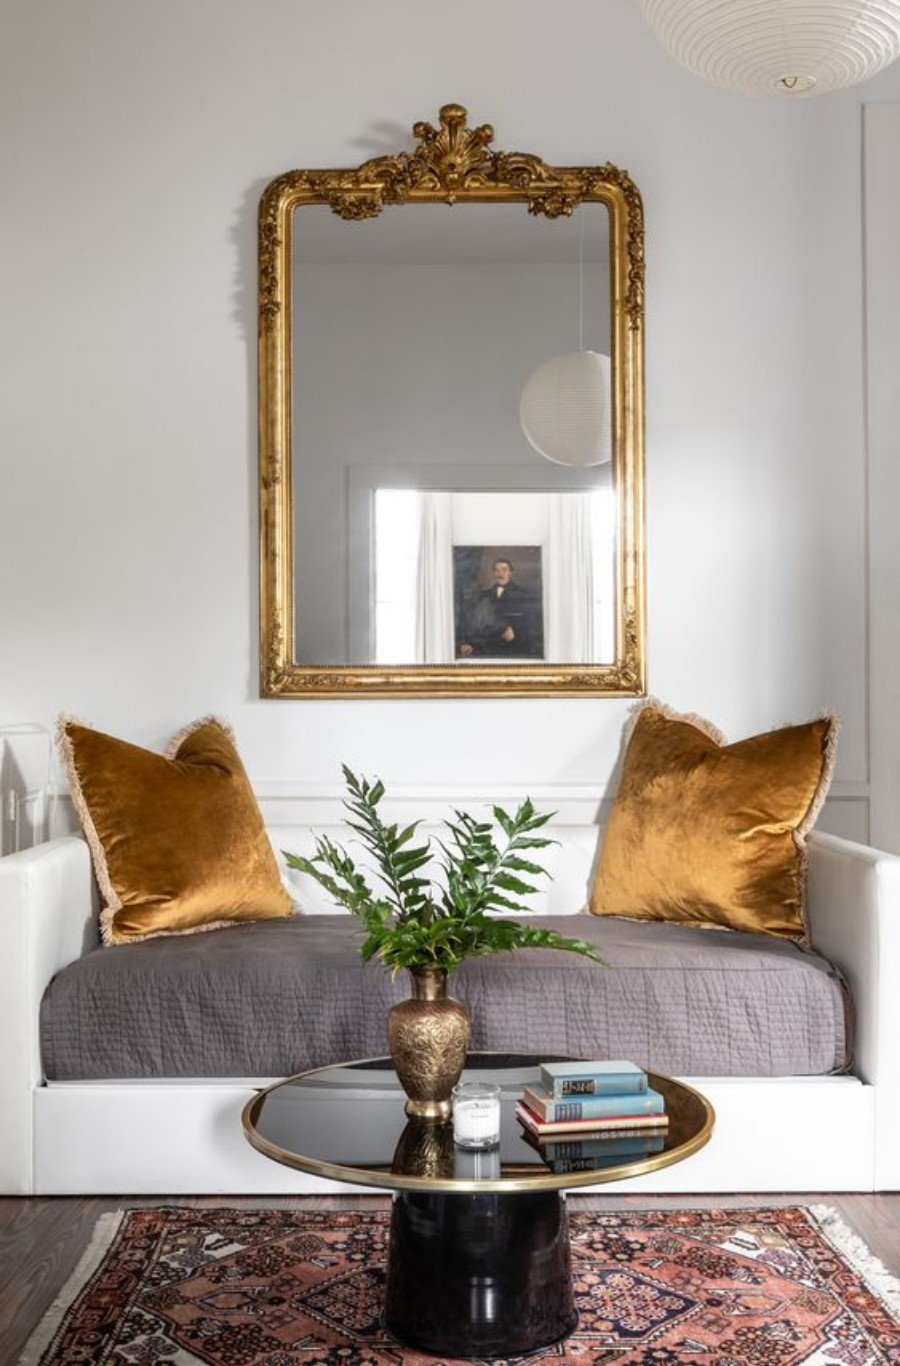 Trend Report - Incorporate Velvet Into Your Home Decor In A Stylish Way trend report Trend Report – Incorporate Velvet Into Your Home Decor In A Stylish Way Trend Report Incorporate Velvet Into Your Home Decor In A Stylish Way 5